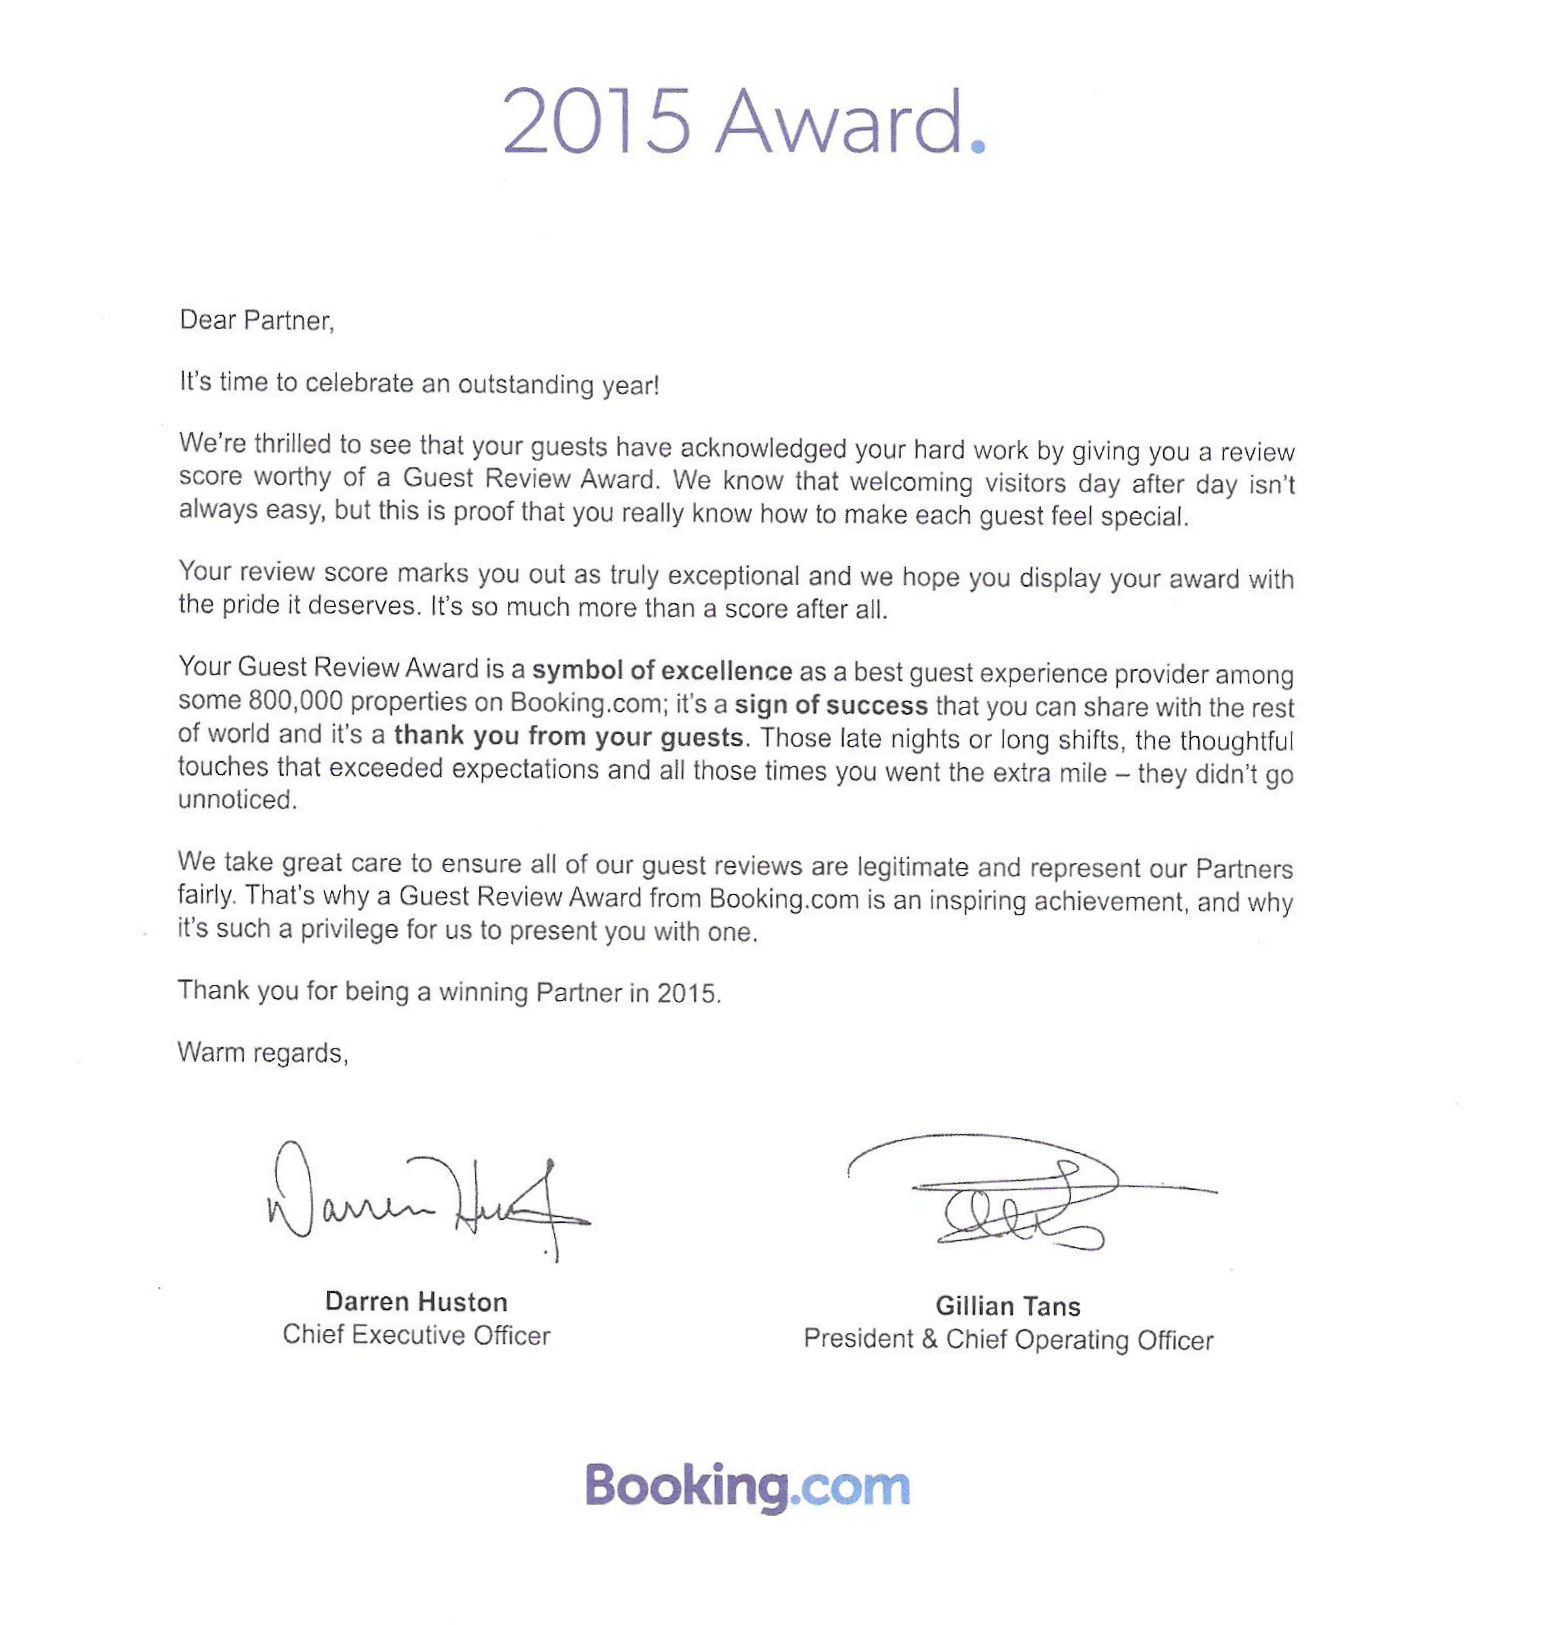 Guest Review Awards 2015 letter from Booking